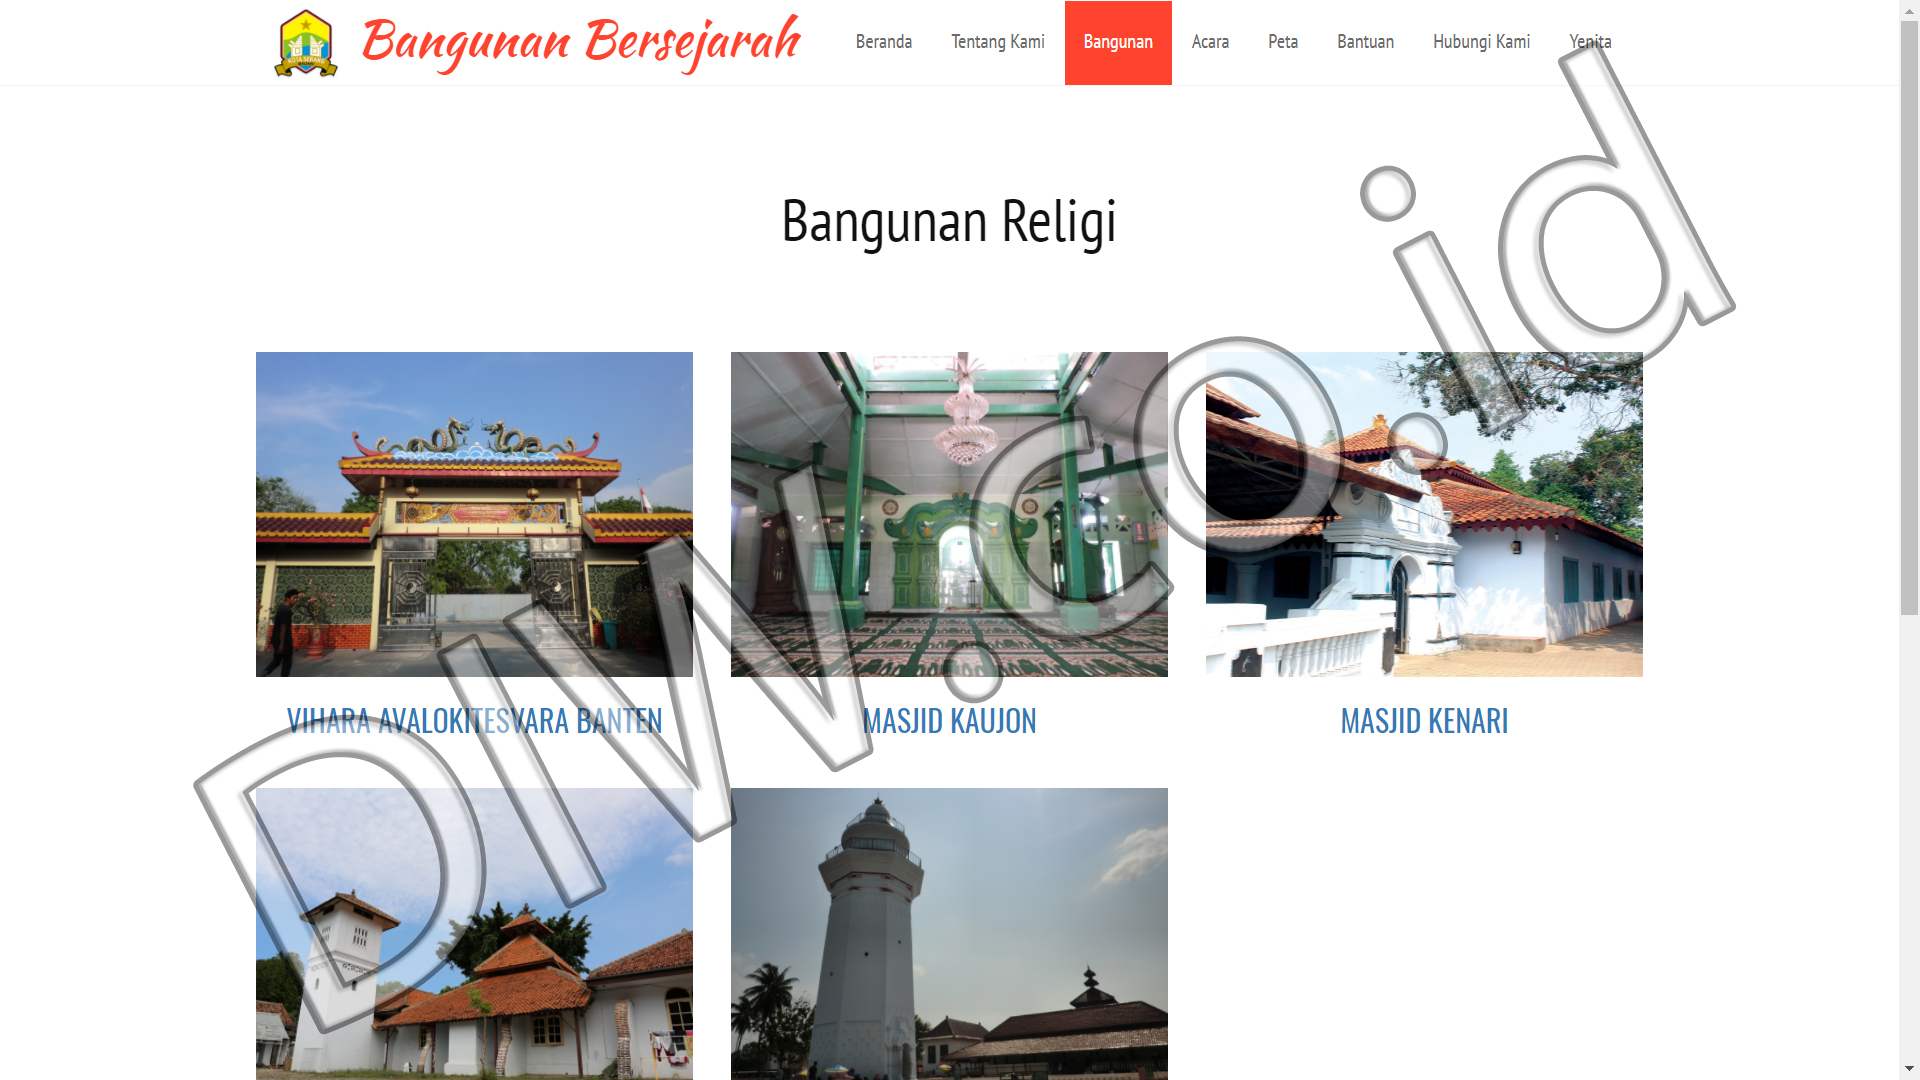 Portfolio 3 - Bangunan Bersejarah - Andri Sunardi - Freelancer - Web Developer - CEO DIW.co.id